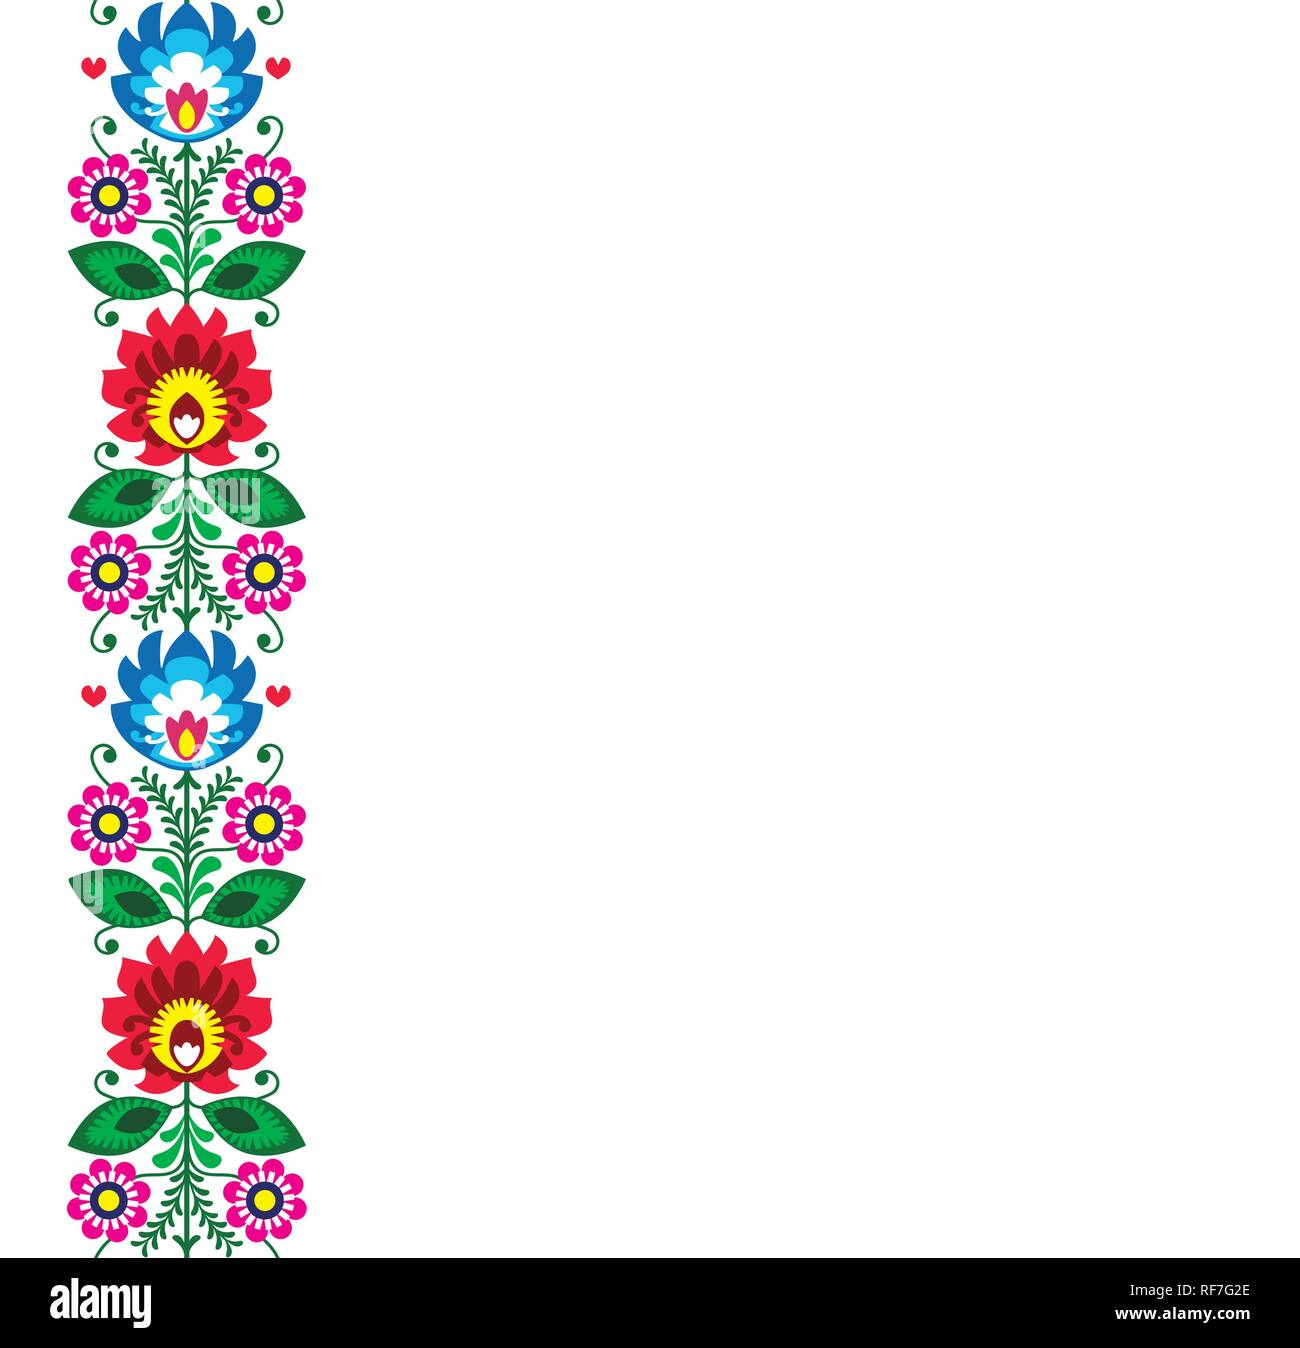 Folk art vector greeting card or wedding invitation - Polish traditional pattern with flowers - Wycinanki Lowickie. Retro floral decoration, Slavic co - Stock Image